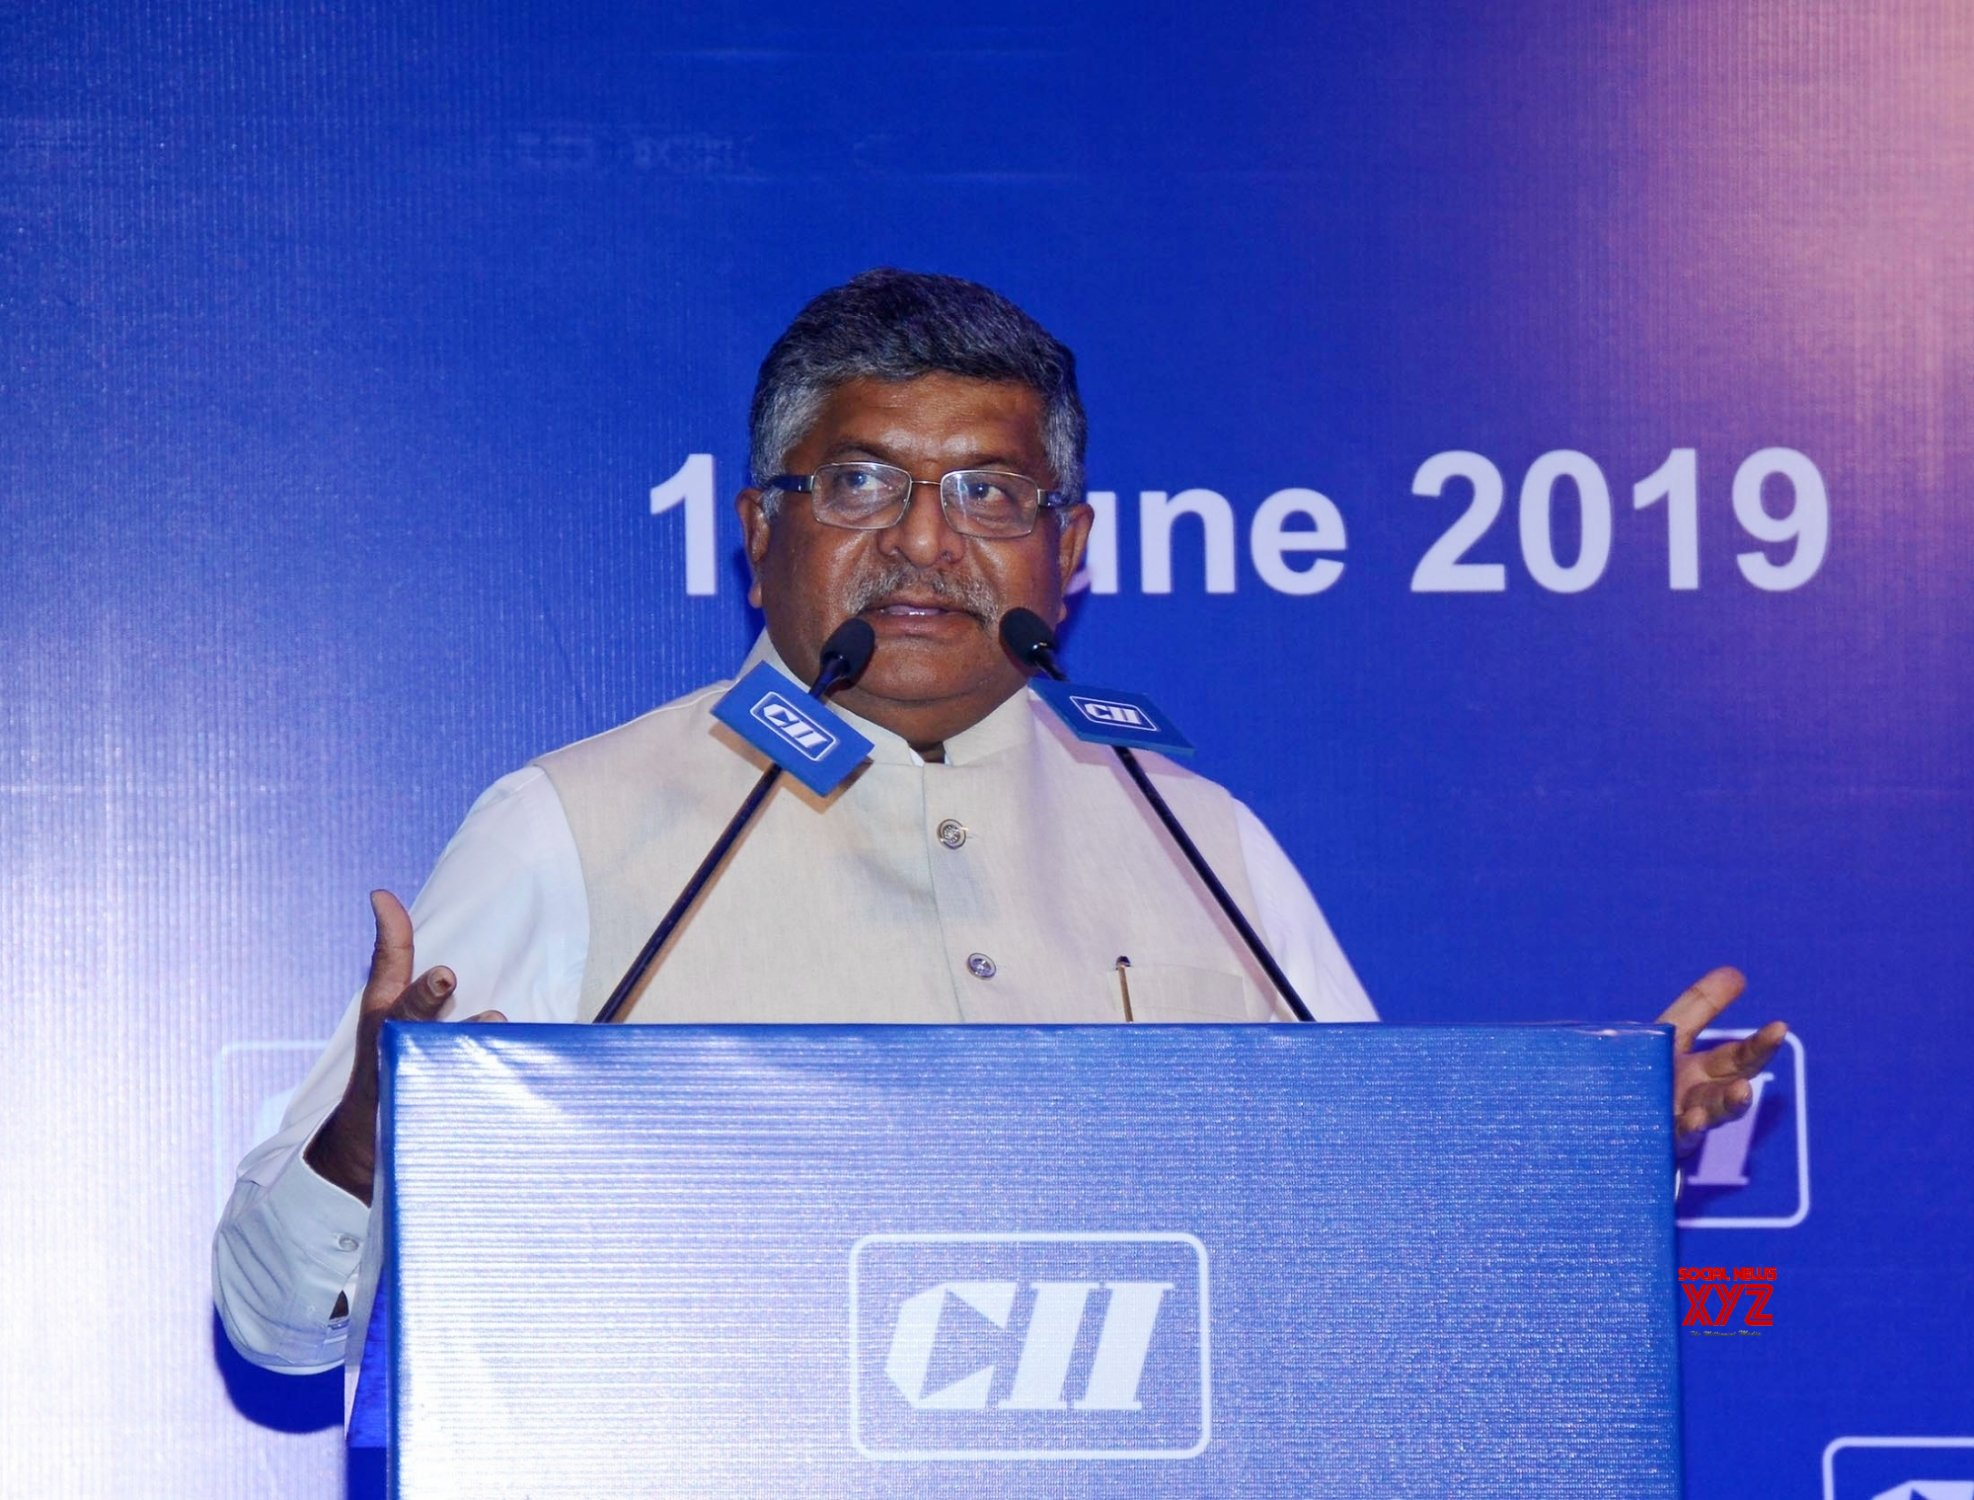 New Delhi: Ravi Shankar Prasad at the National Council Meeting of CII #Gallery